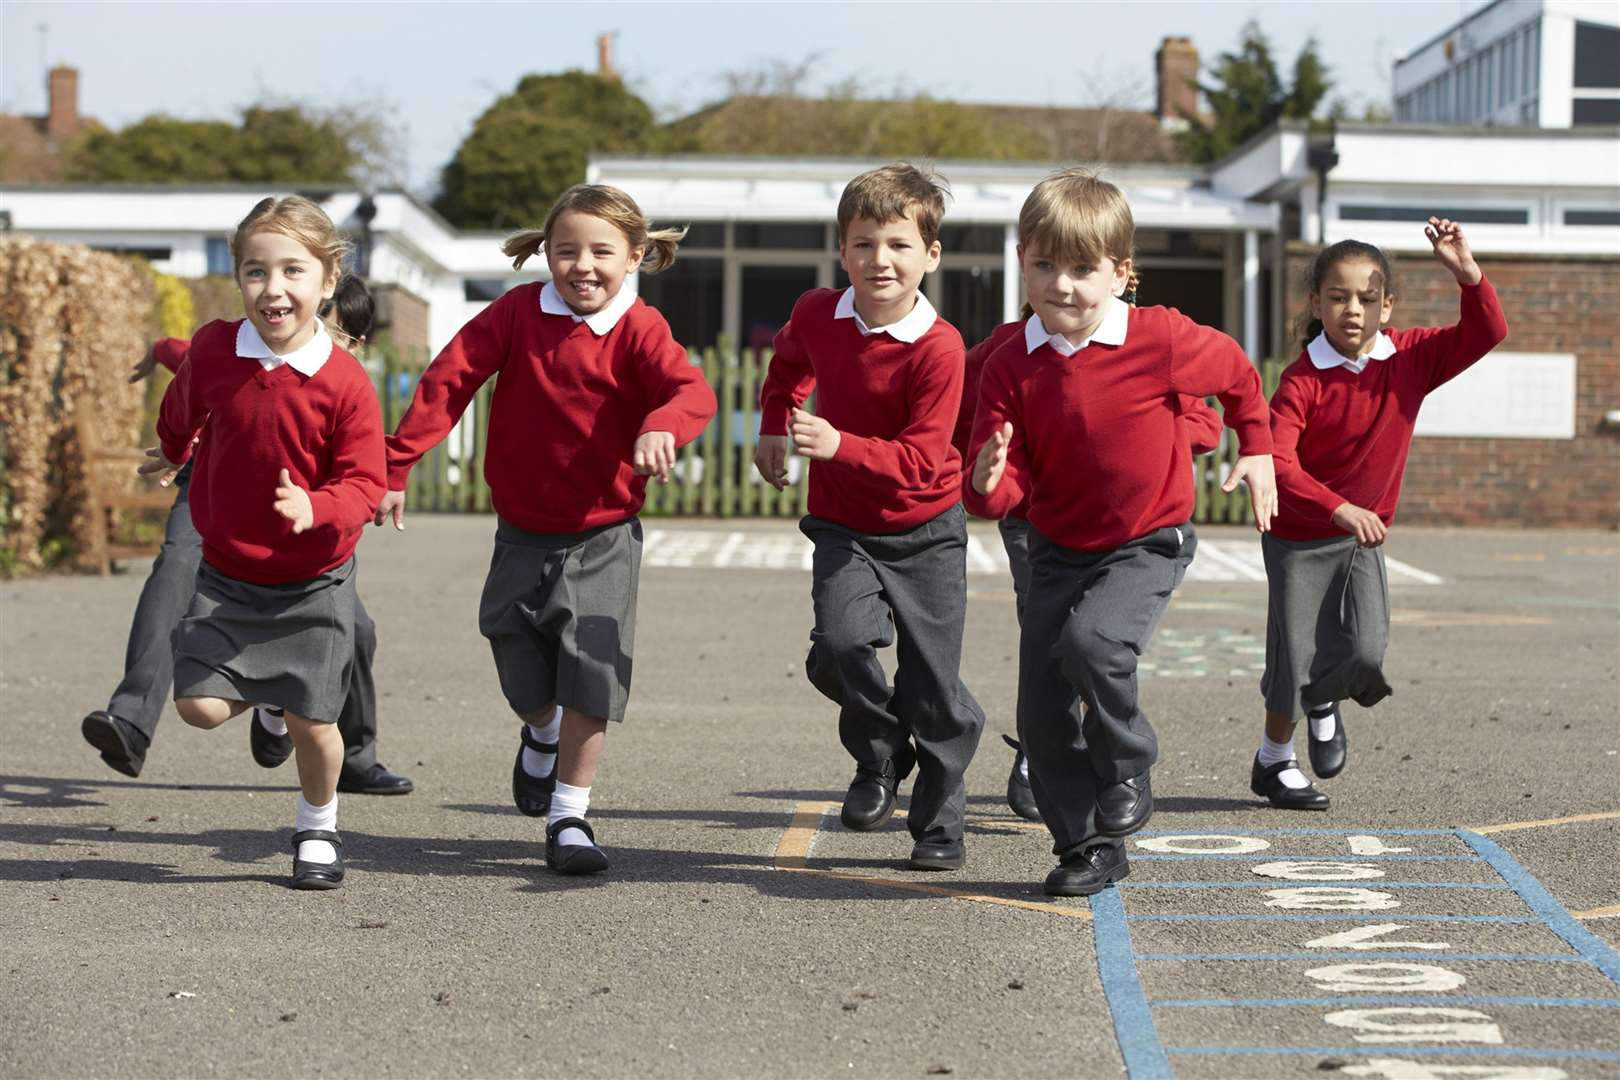 The best and worst performing primary schools have been revealed